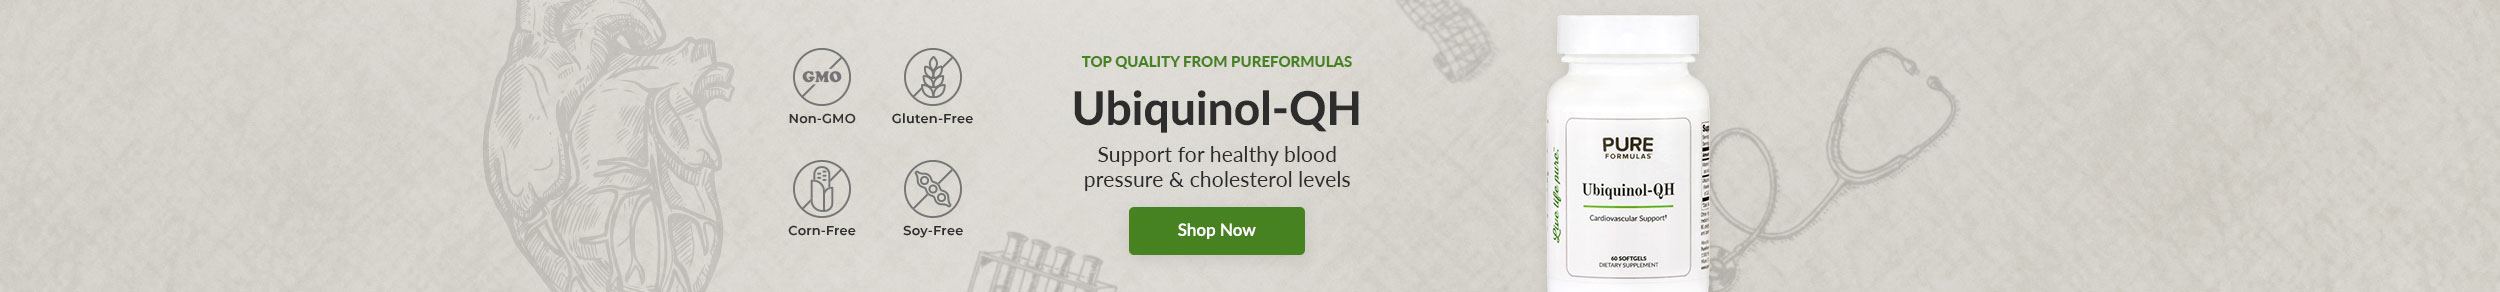 Top Quality from PureFormulas: Ubiquinol-QH - Support for healthy blood pressure & cholesterol levels